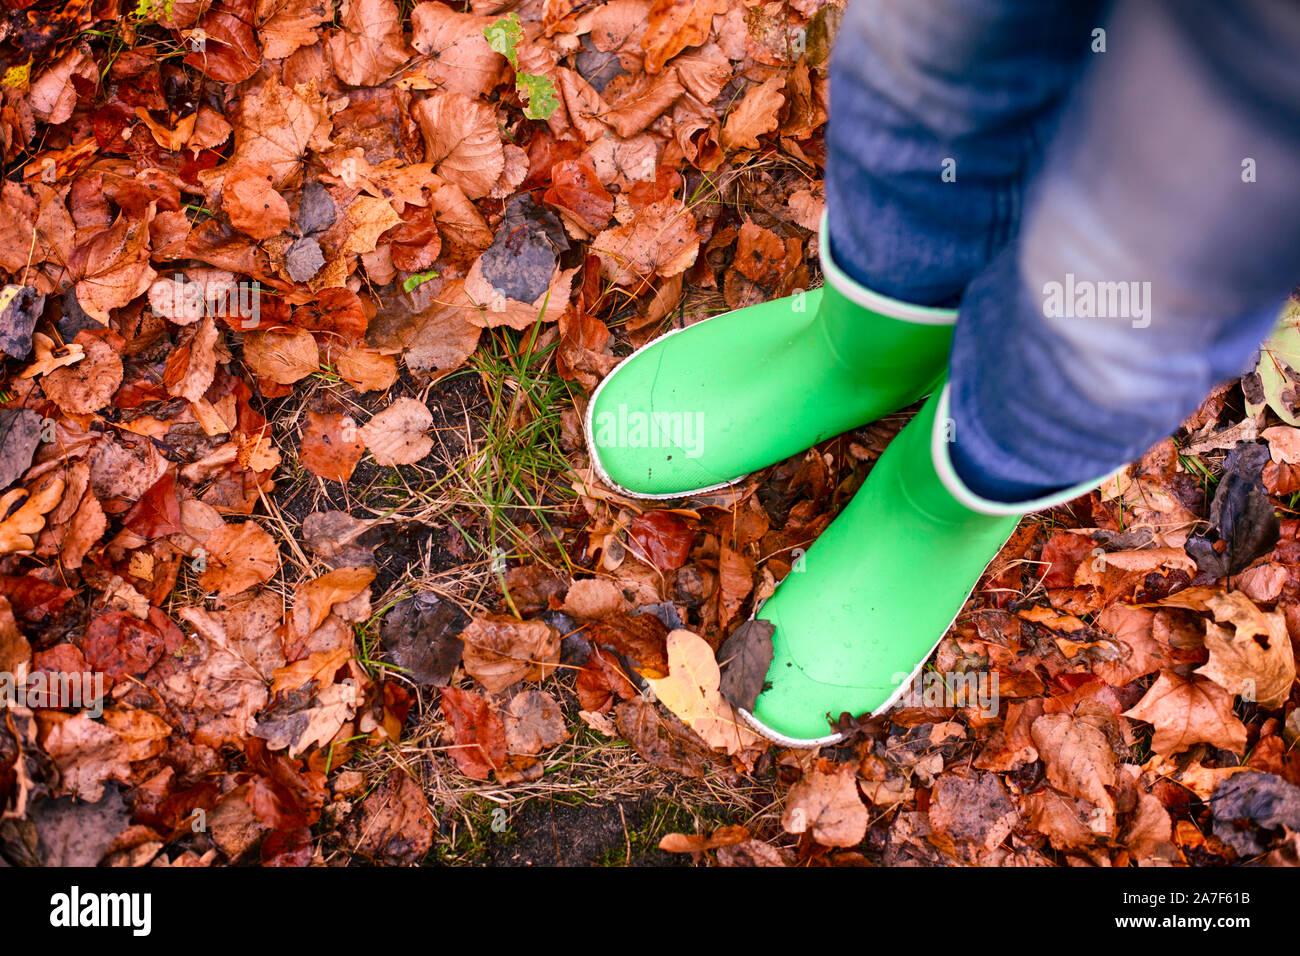 Child in green rubber boots standing on fallen leaves outdoors. Stock Photo